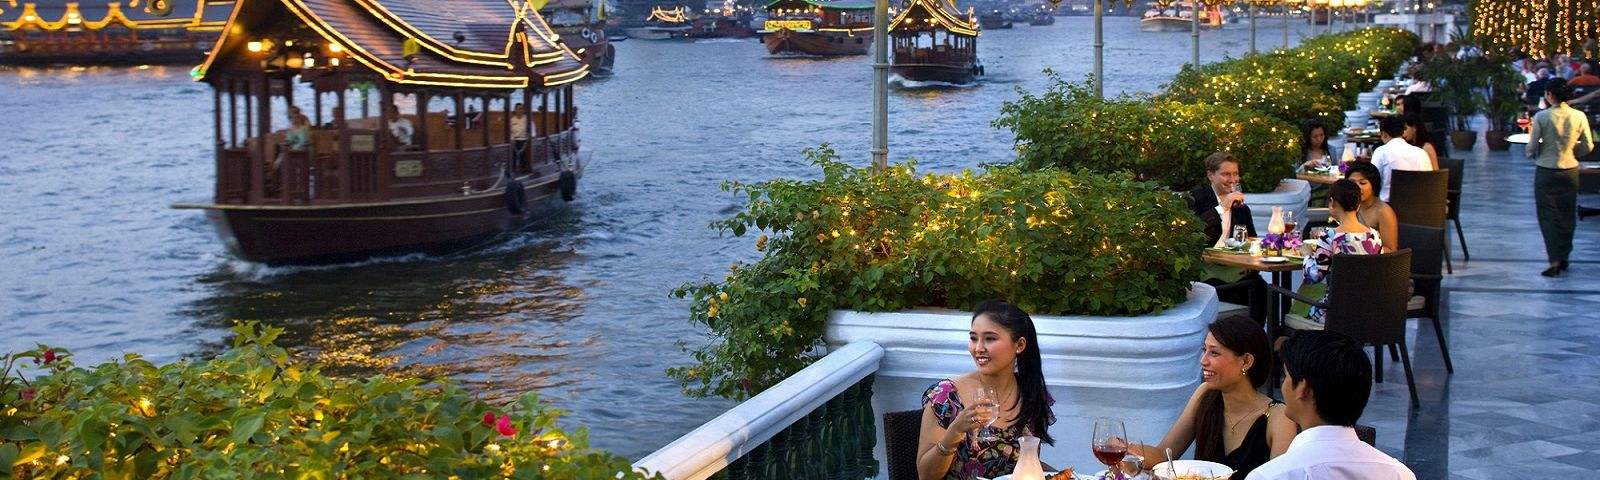 thailand-bangkok-city-thailand-bangkok-the-city - Bangkok Restaurant